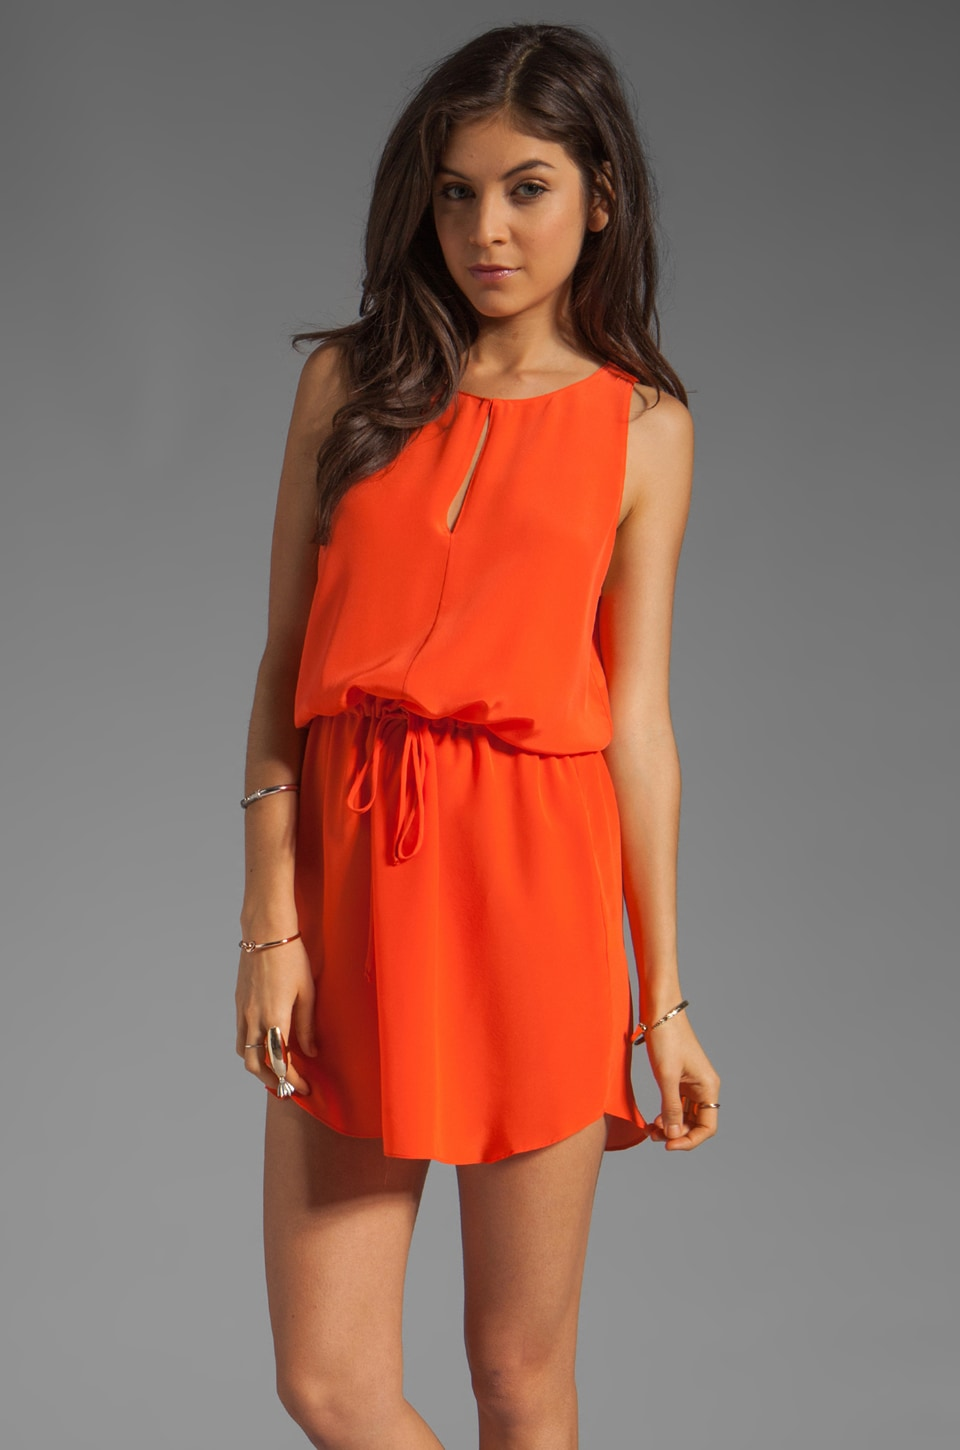 Rory Beca Aventure Keyhole Flounce Dress in Tangerine